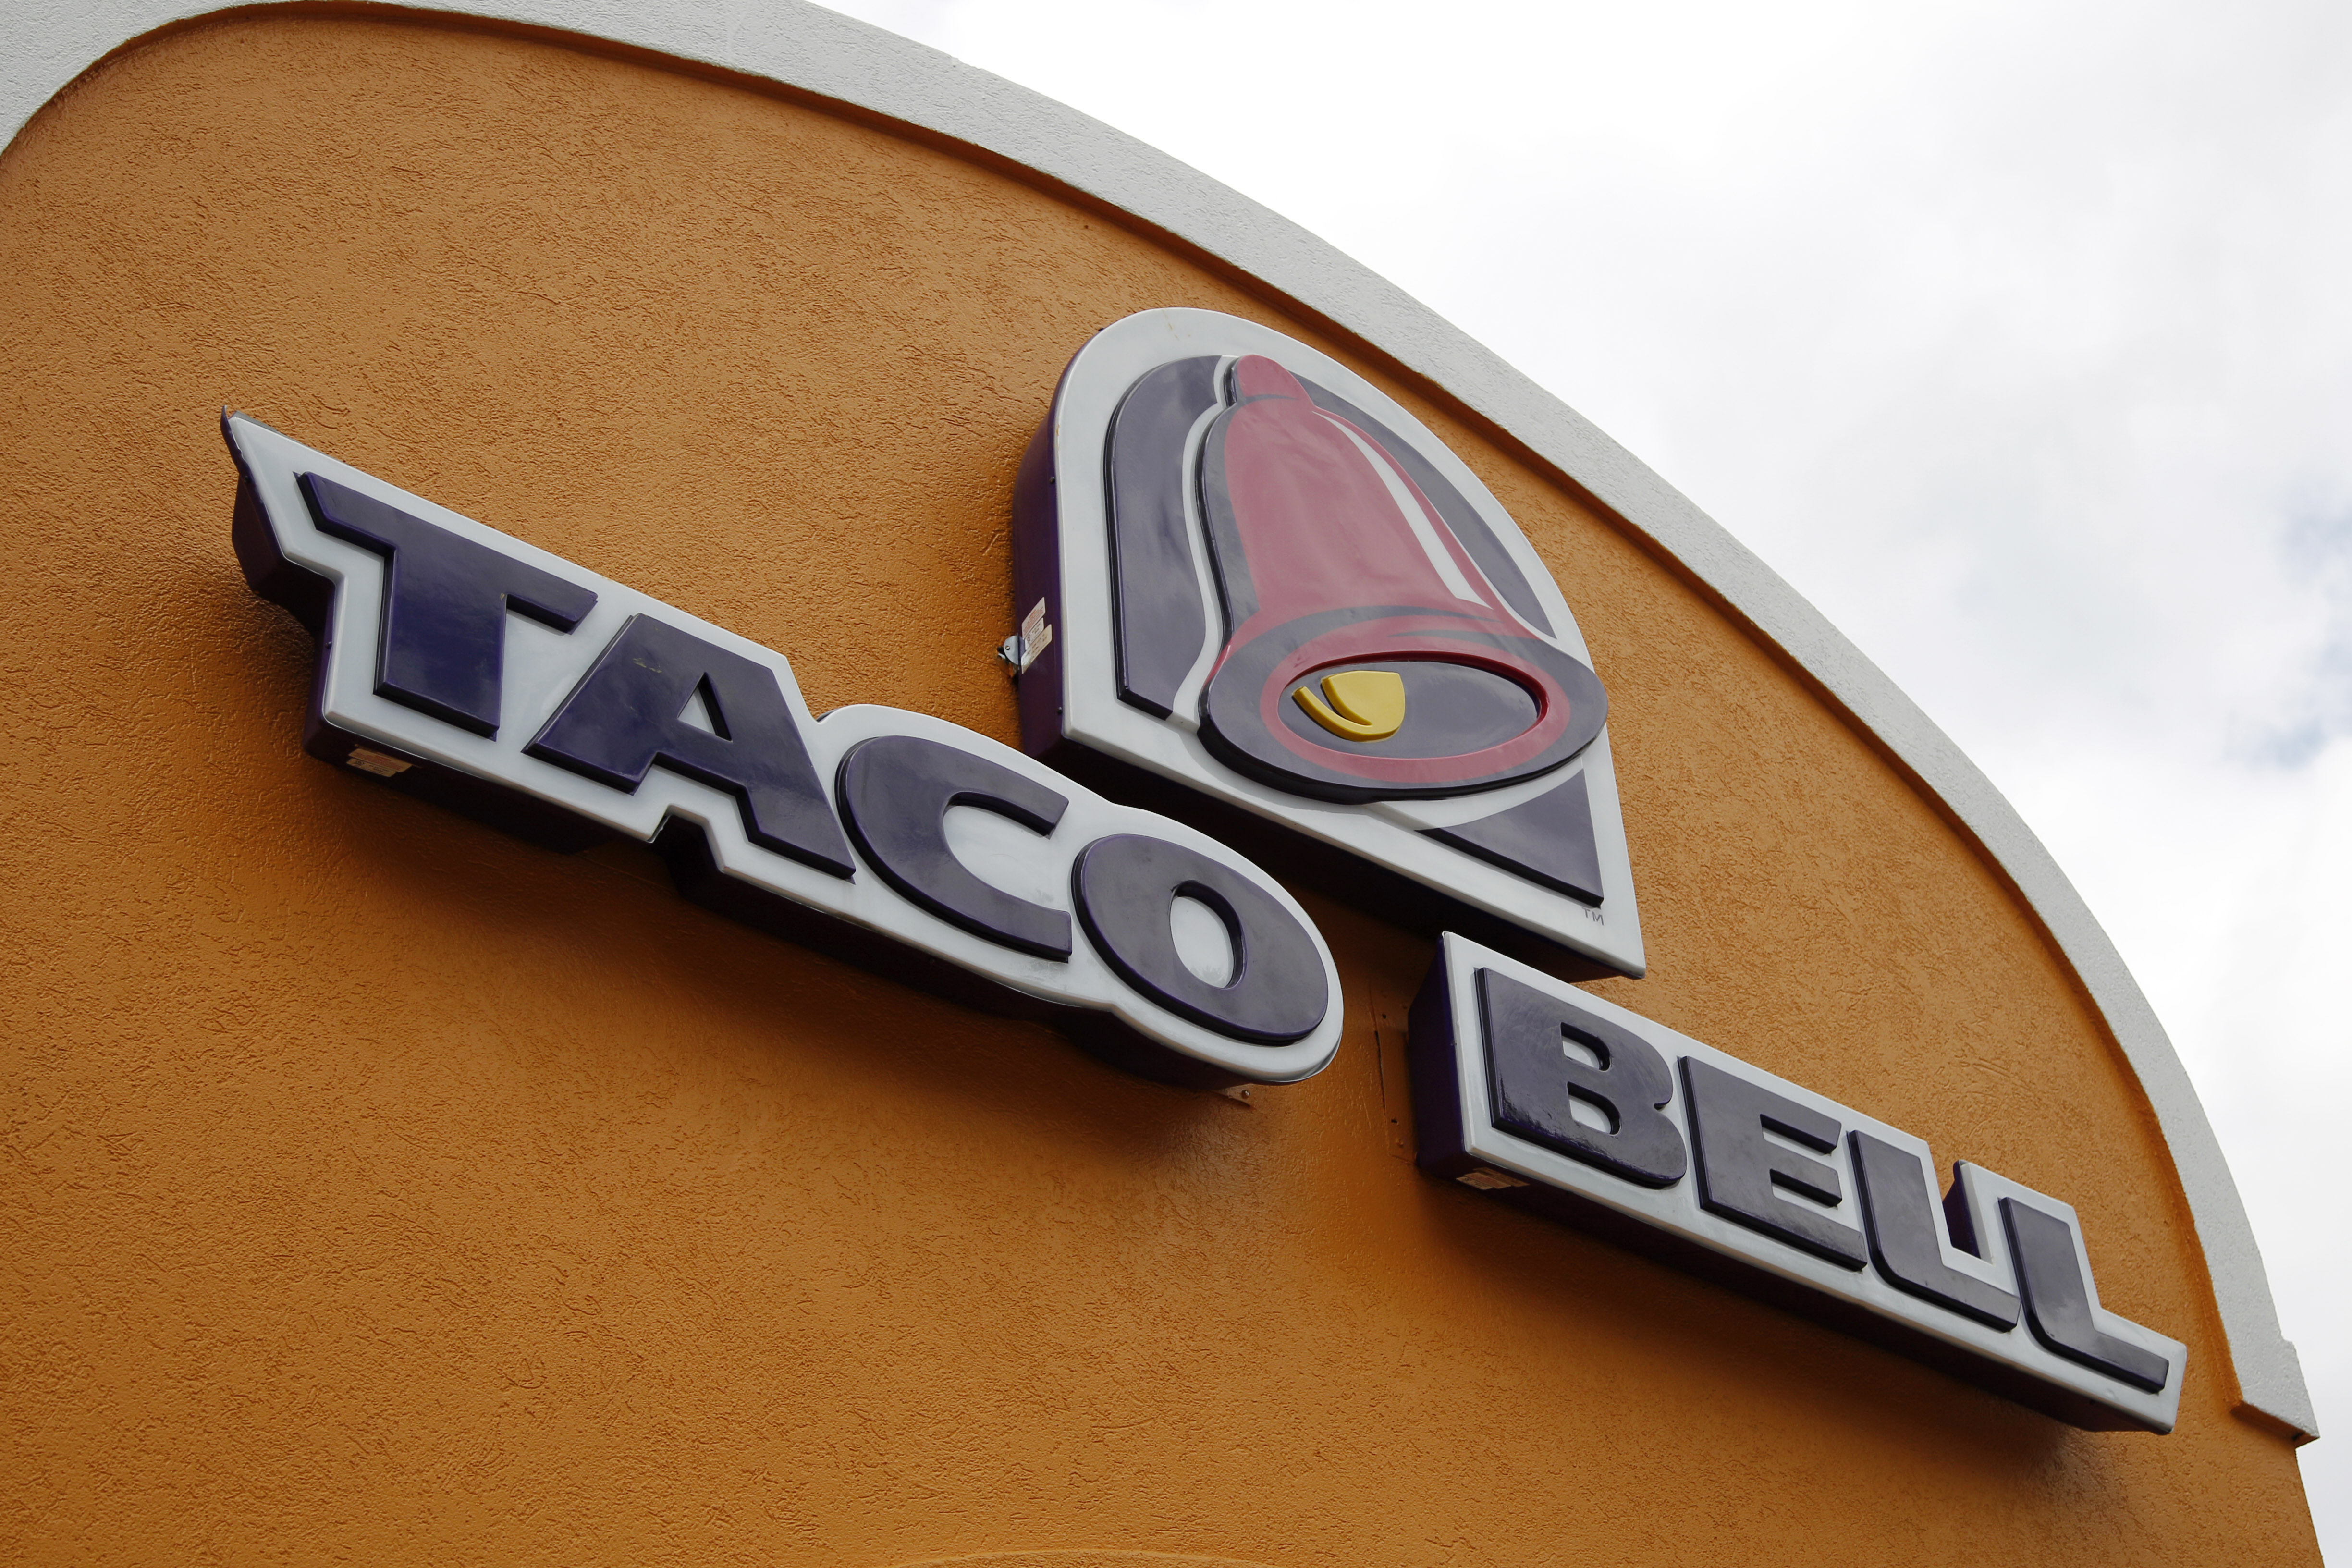 Taco Bell plans to test delivery service in 2015